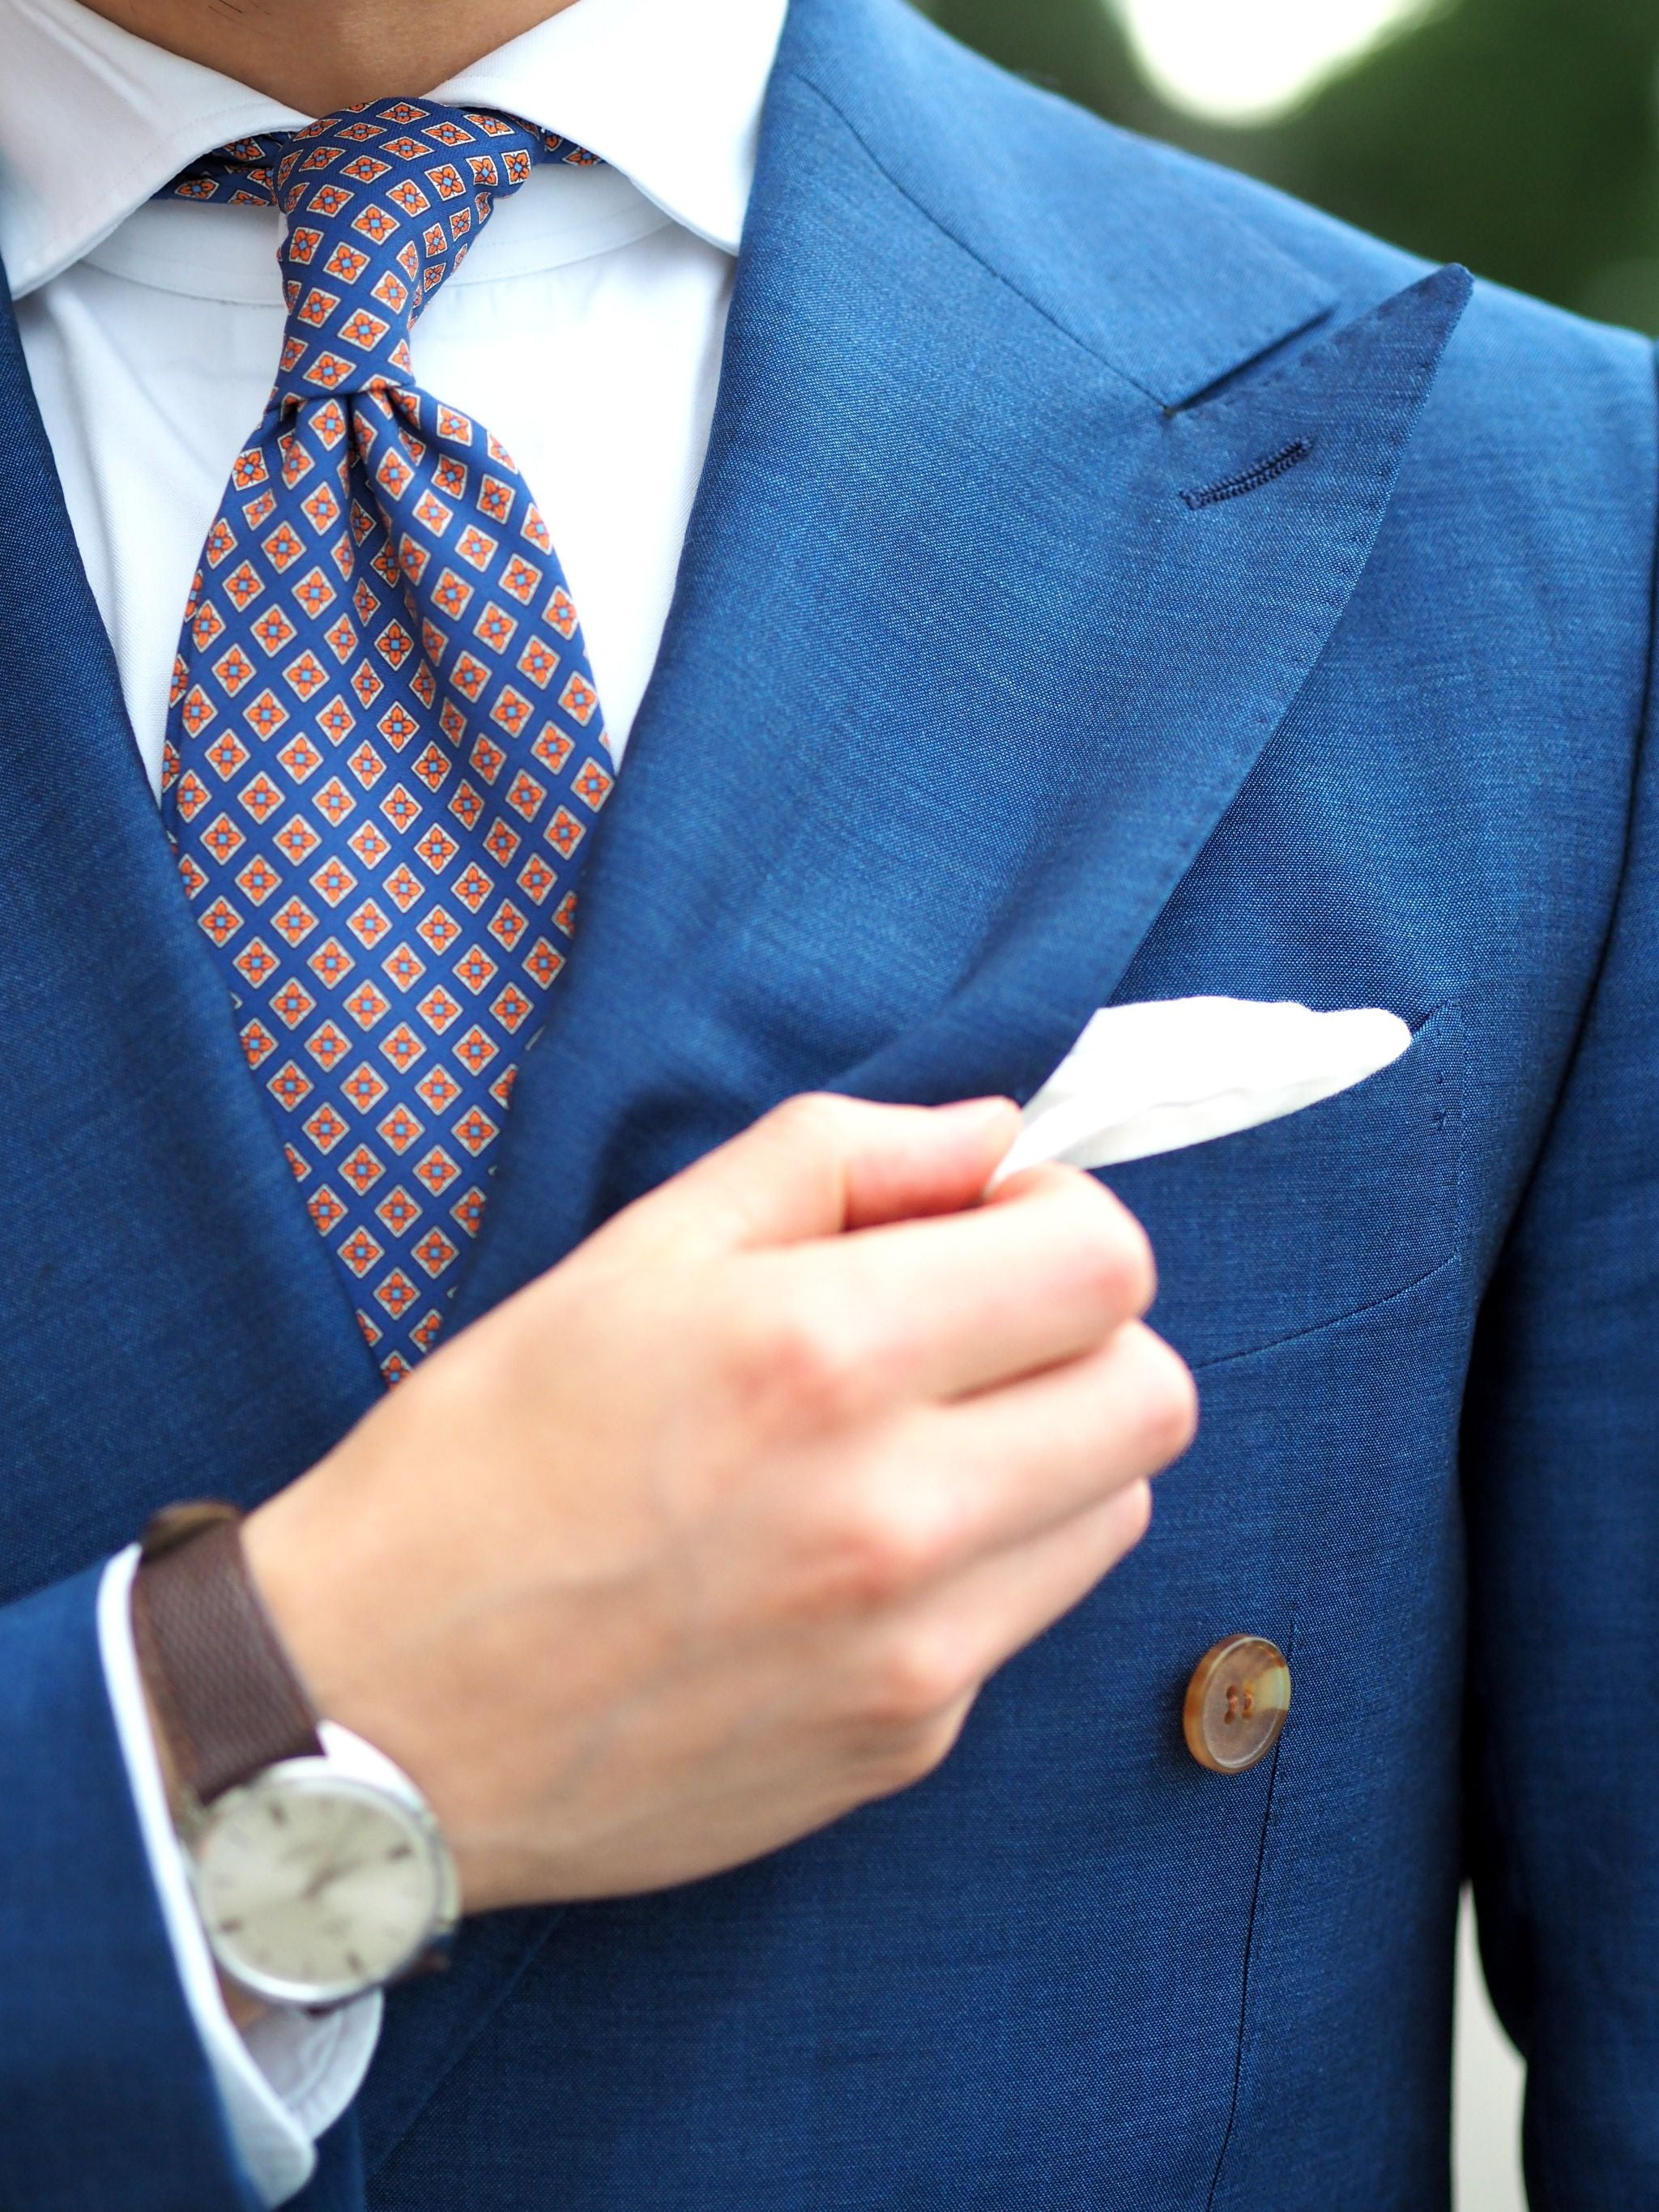 Royal-blue-suit-with-printed-tie-and-white-linen-pocket-square